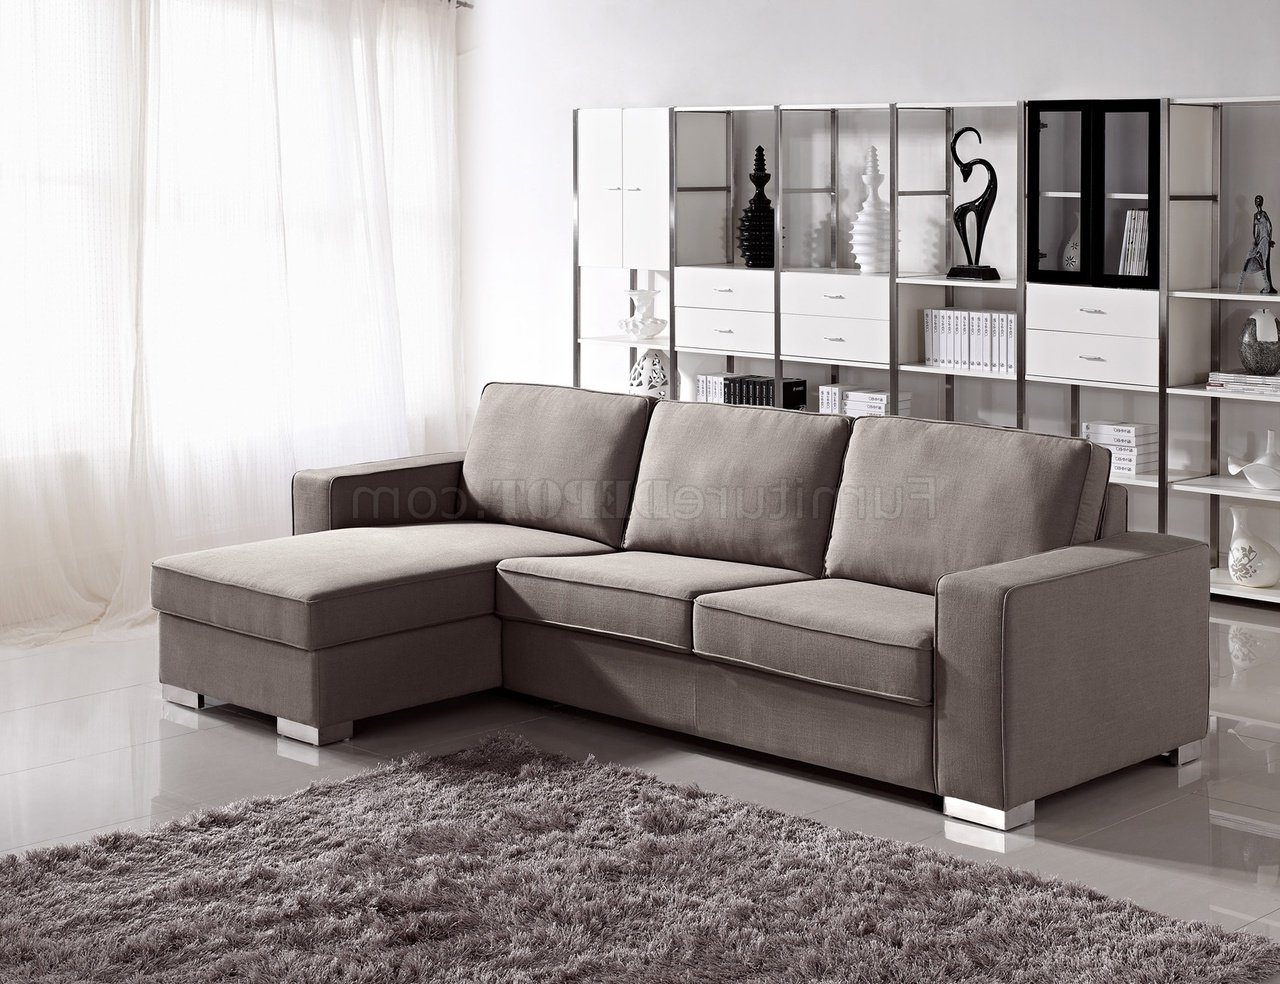 Favorite Convertible Sectional Sofas With 1264 Sectional Sofa Bed Convertible In Fabricesf (View 7 of 15)